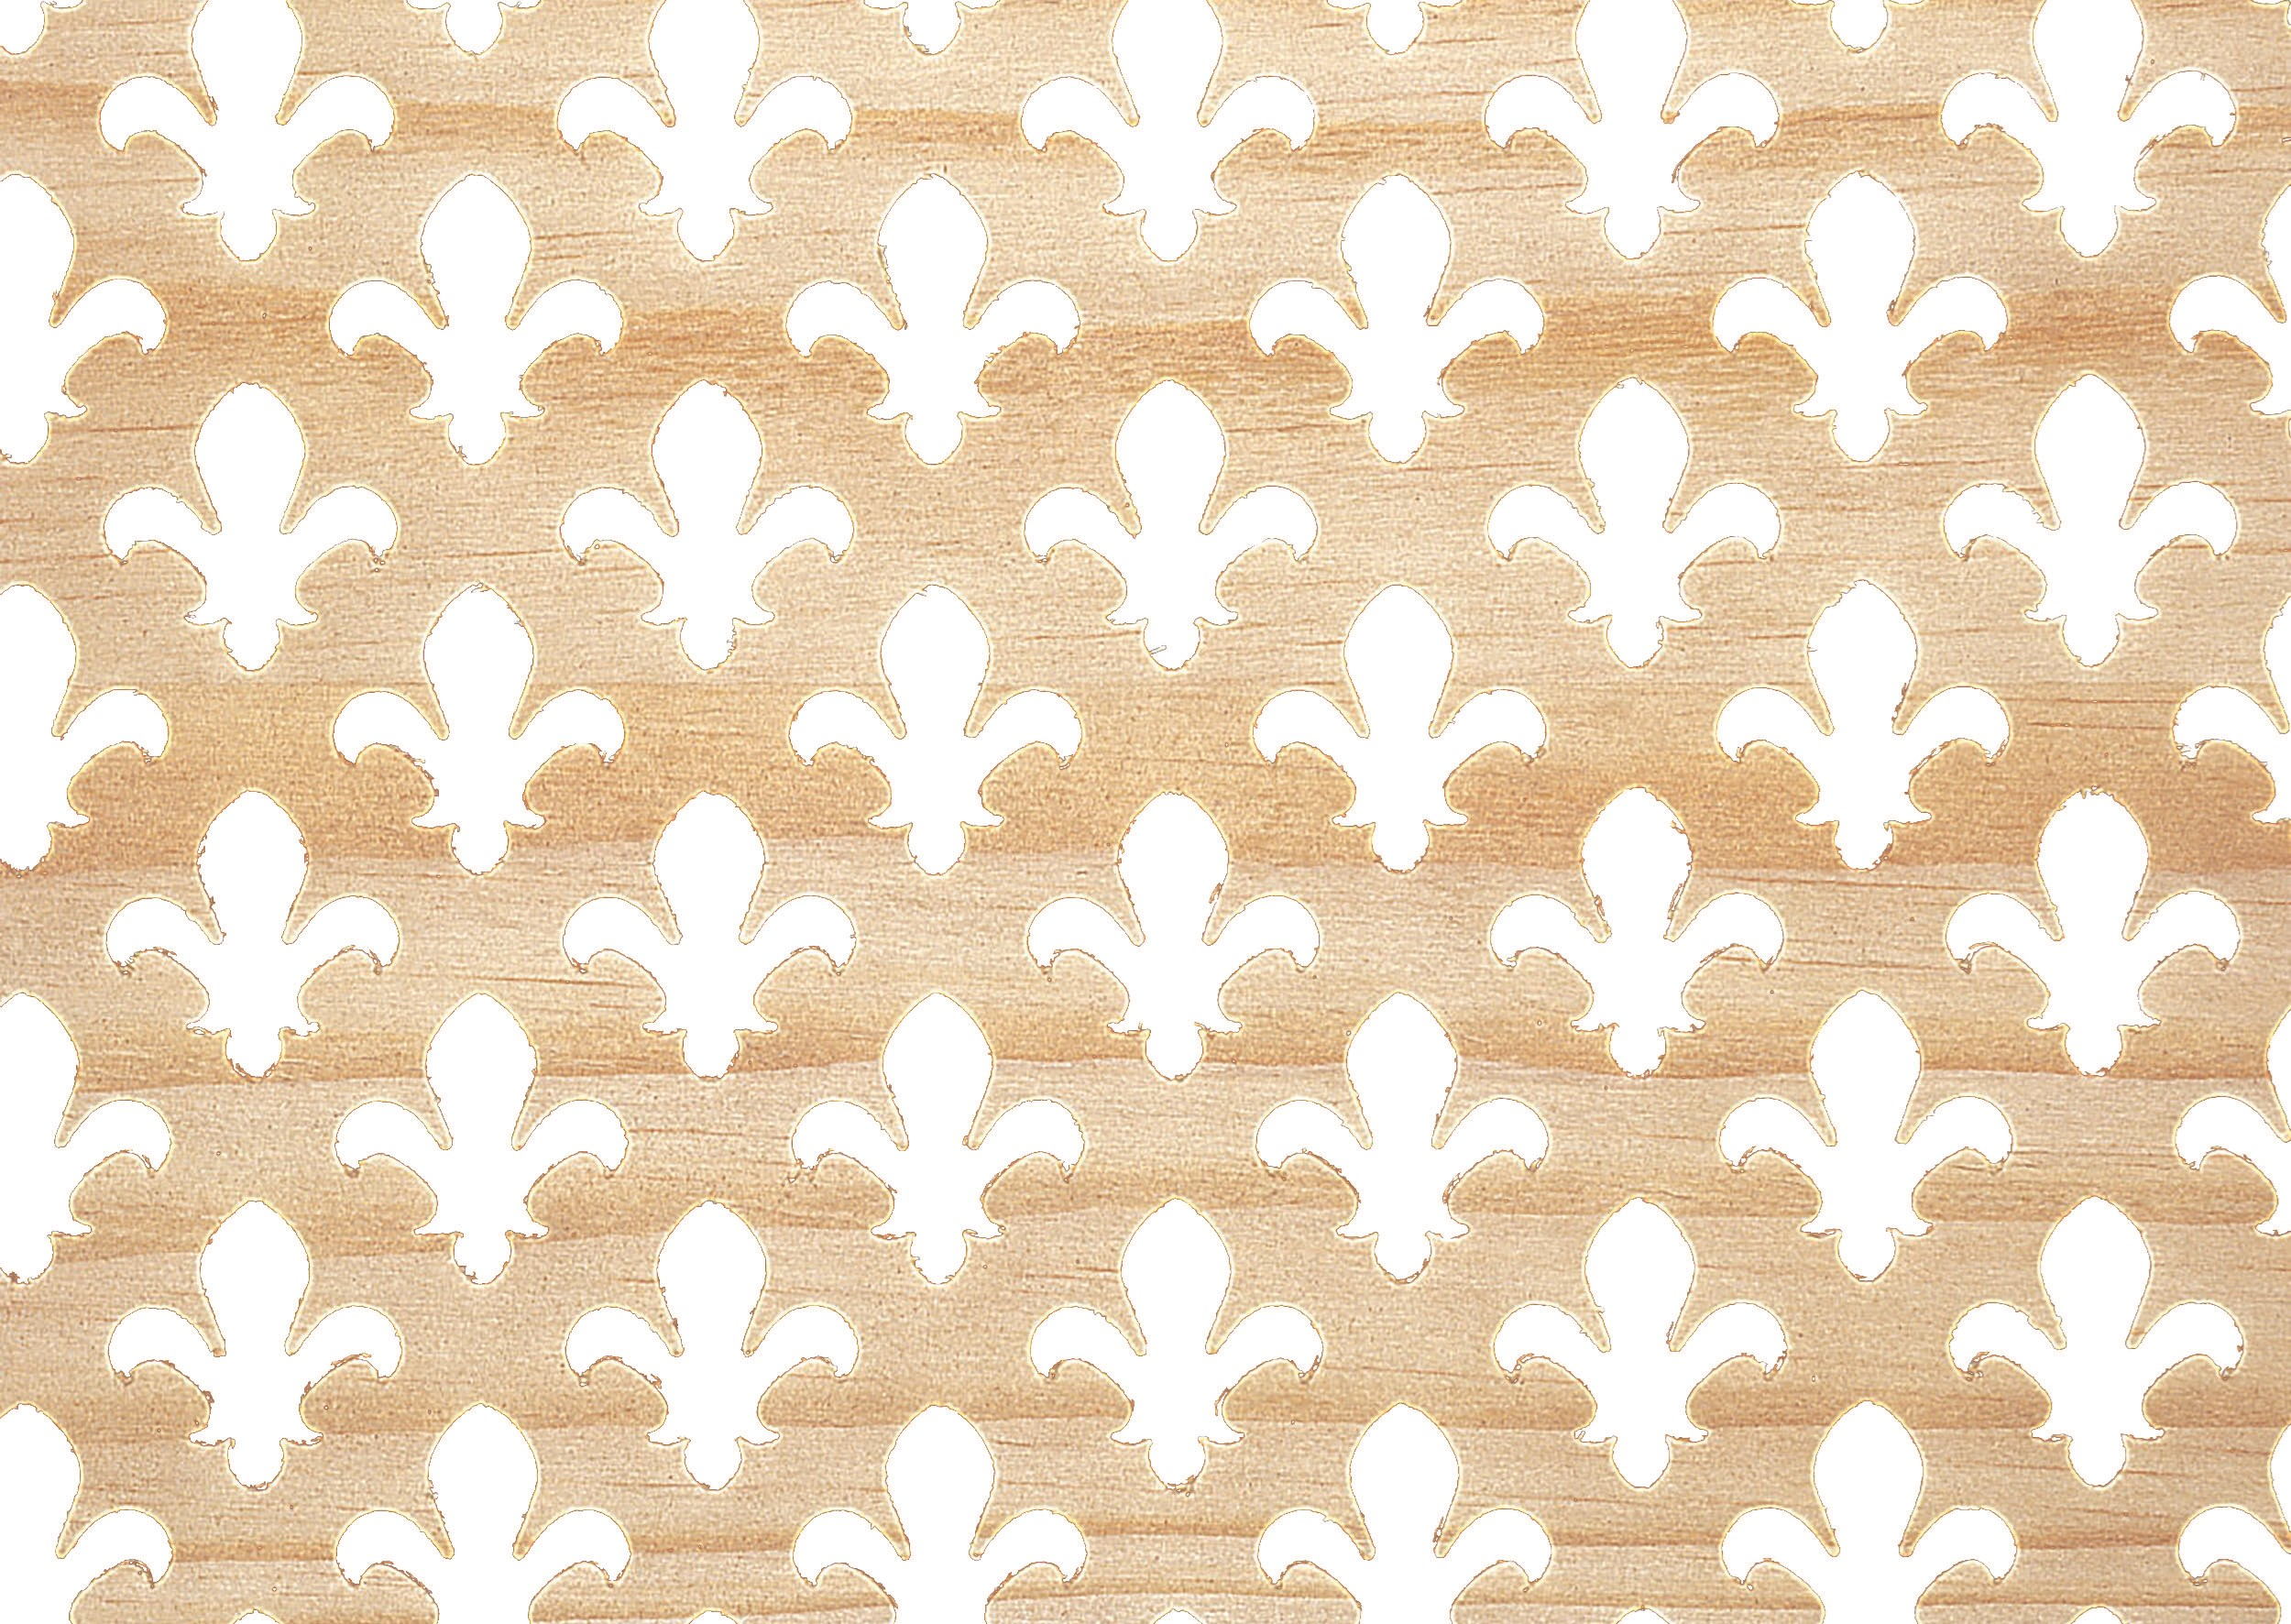 Applications  Screening Panel Fleur De Lis Pattern - Pine